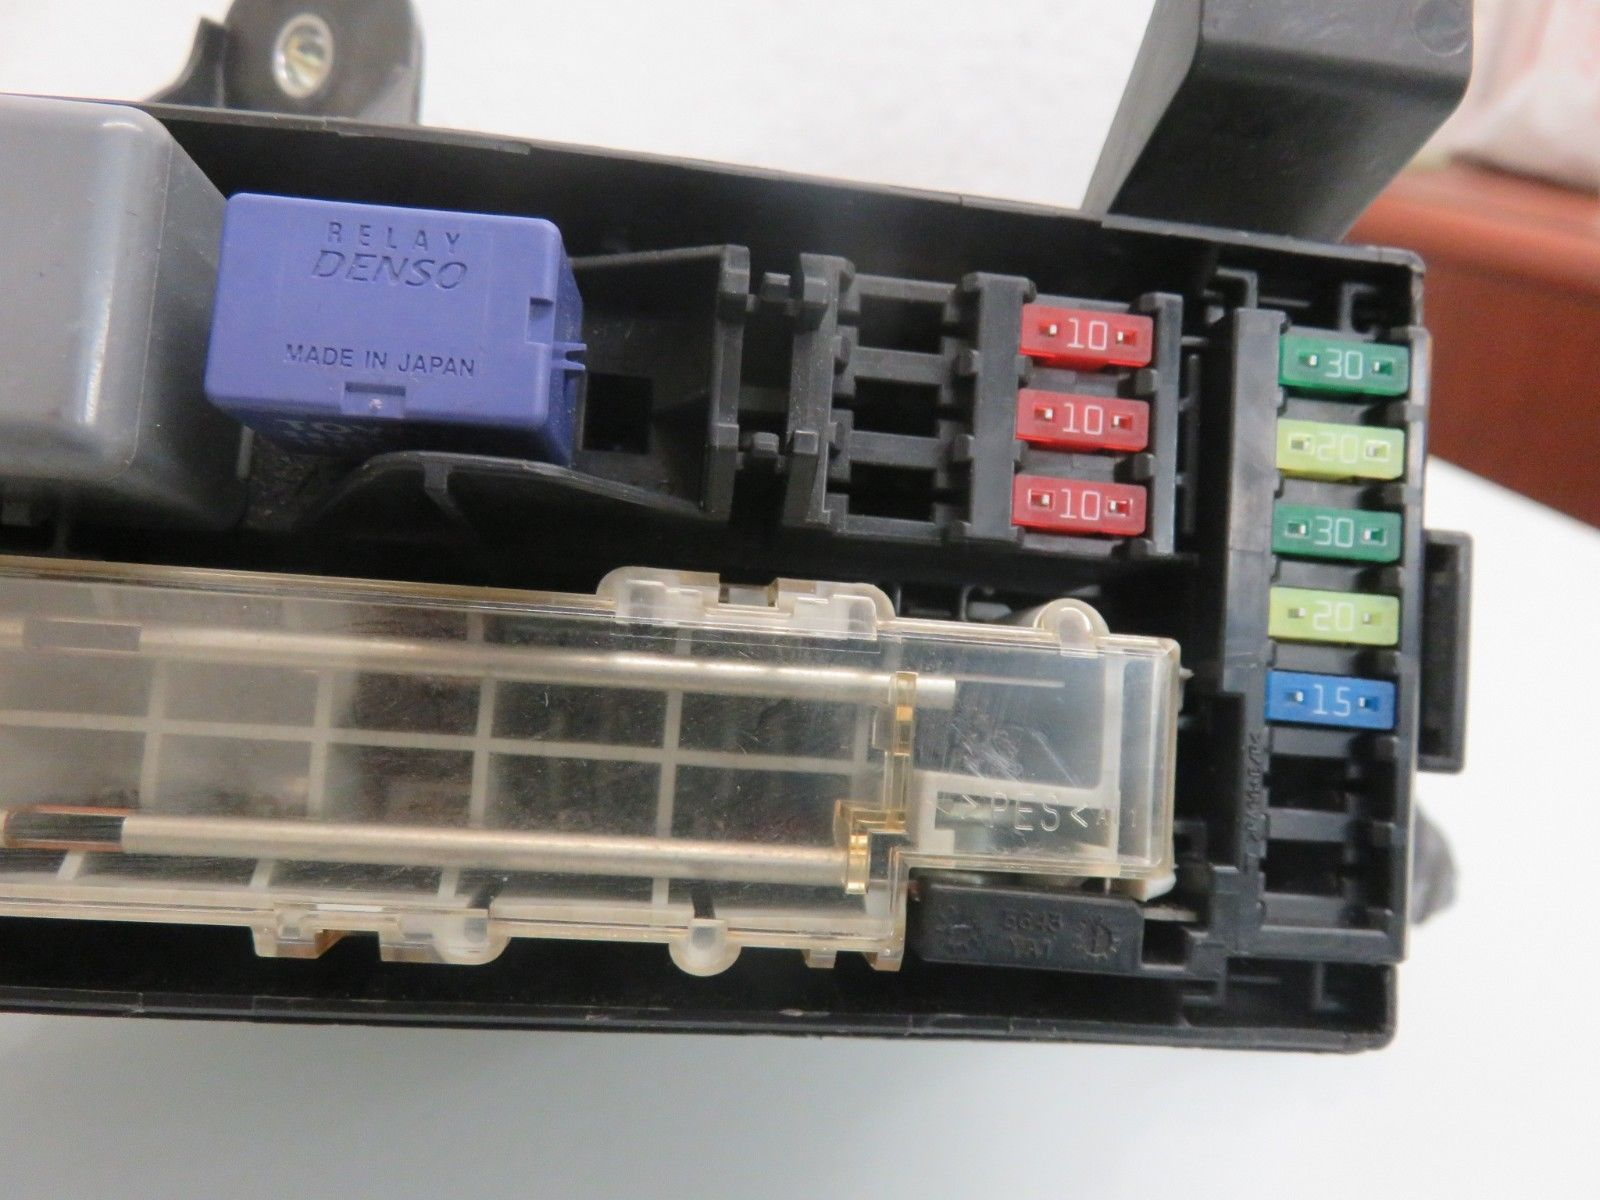 06-08 LEXUS IS250 BATTERY POSITIVE TERMINAL FUSE BOX OEM 82821-50470